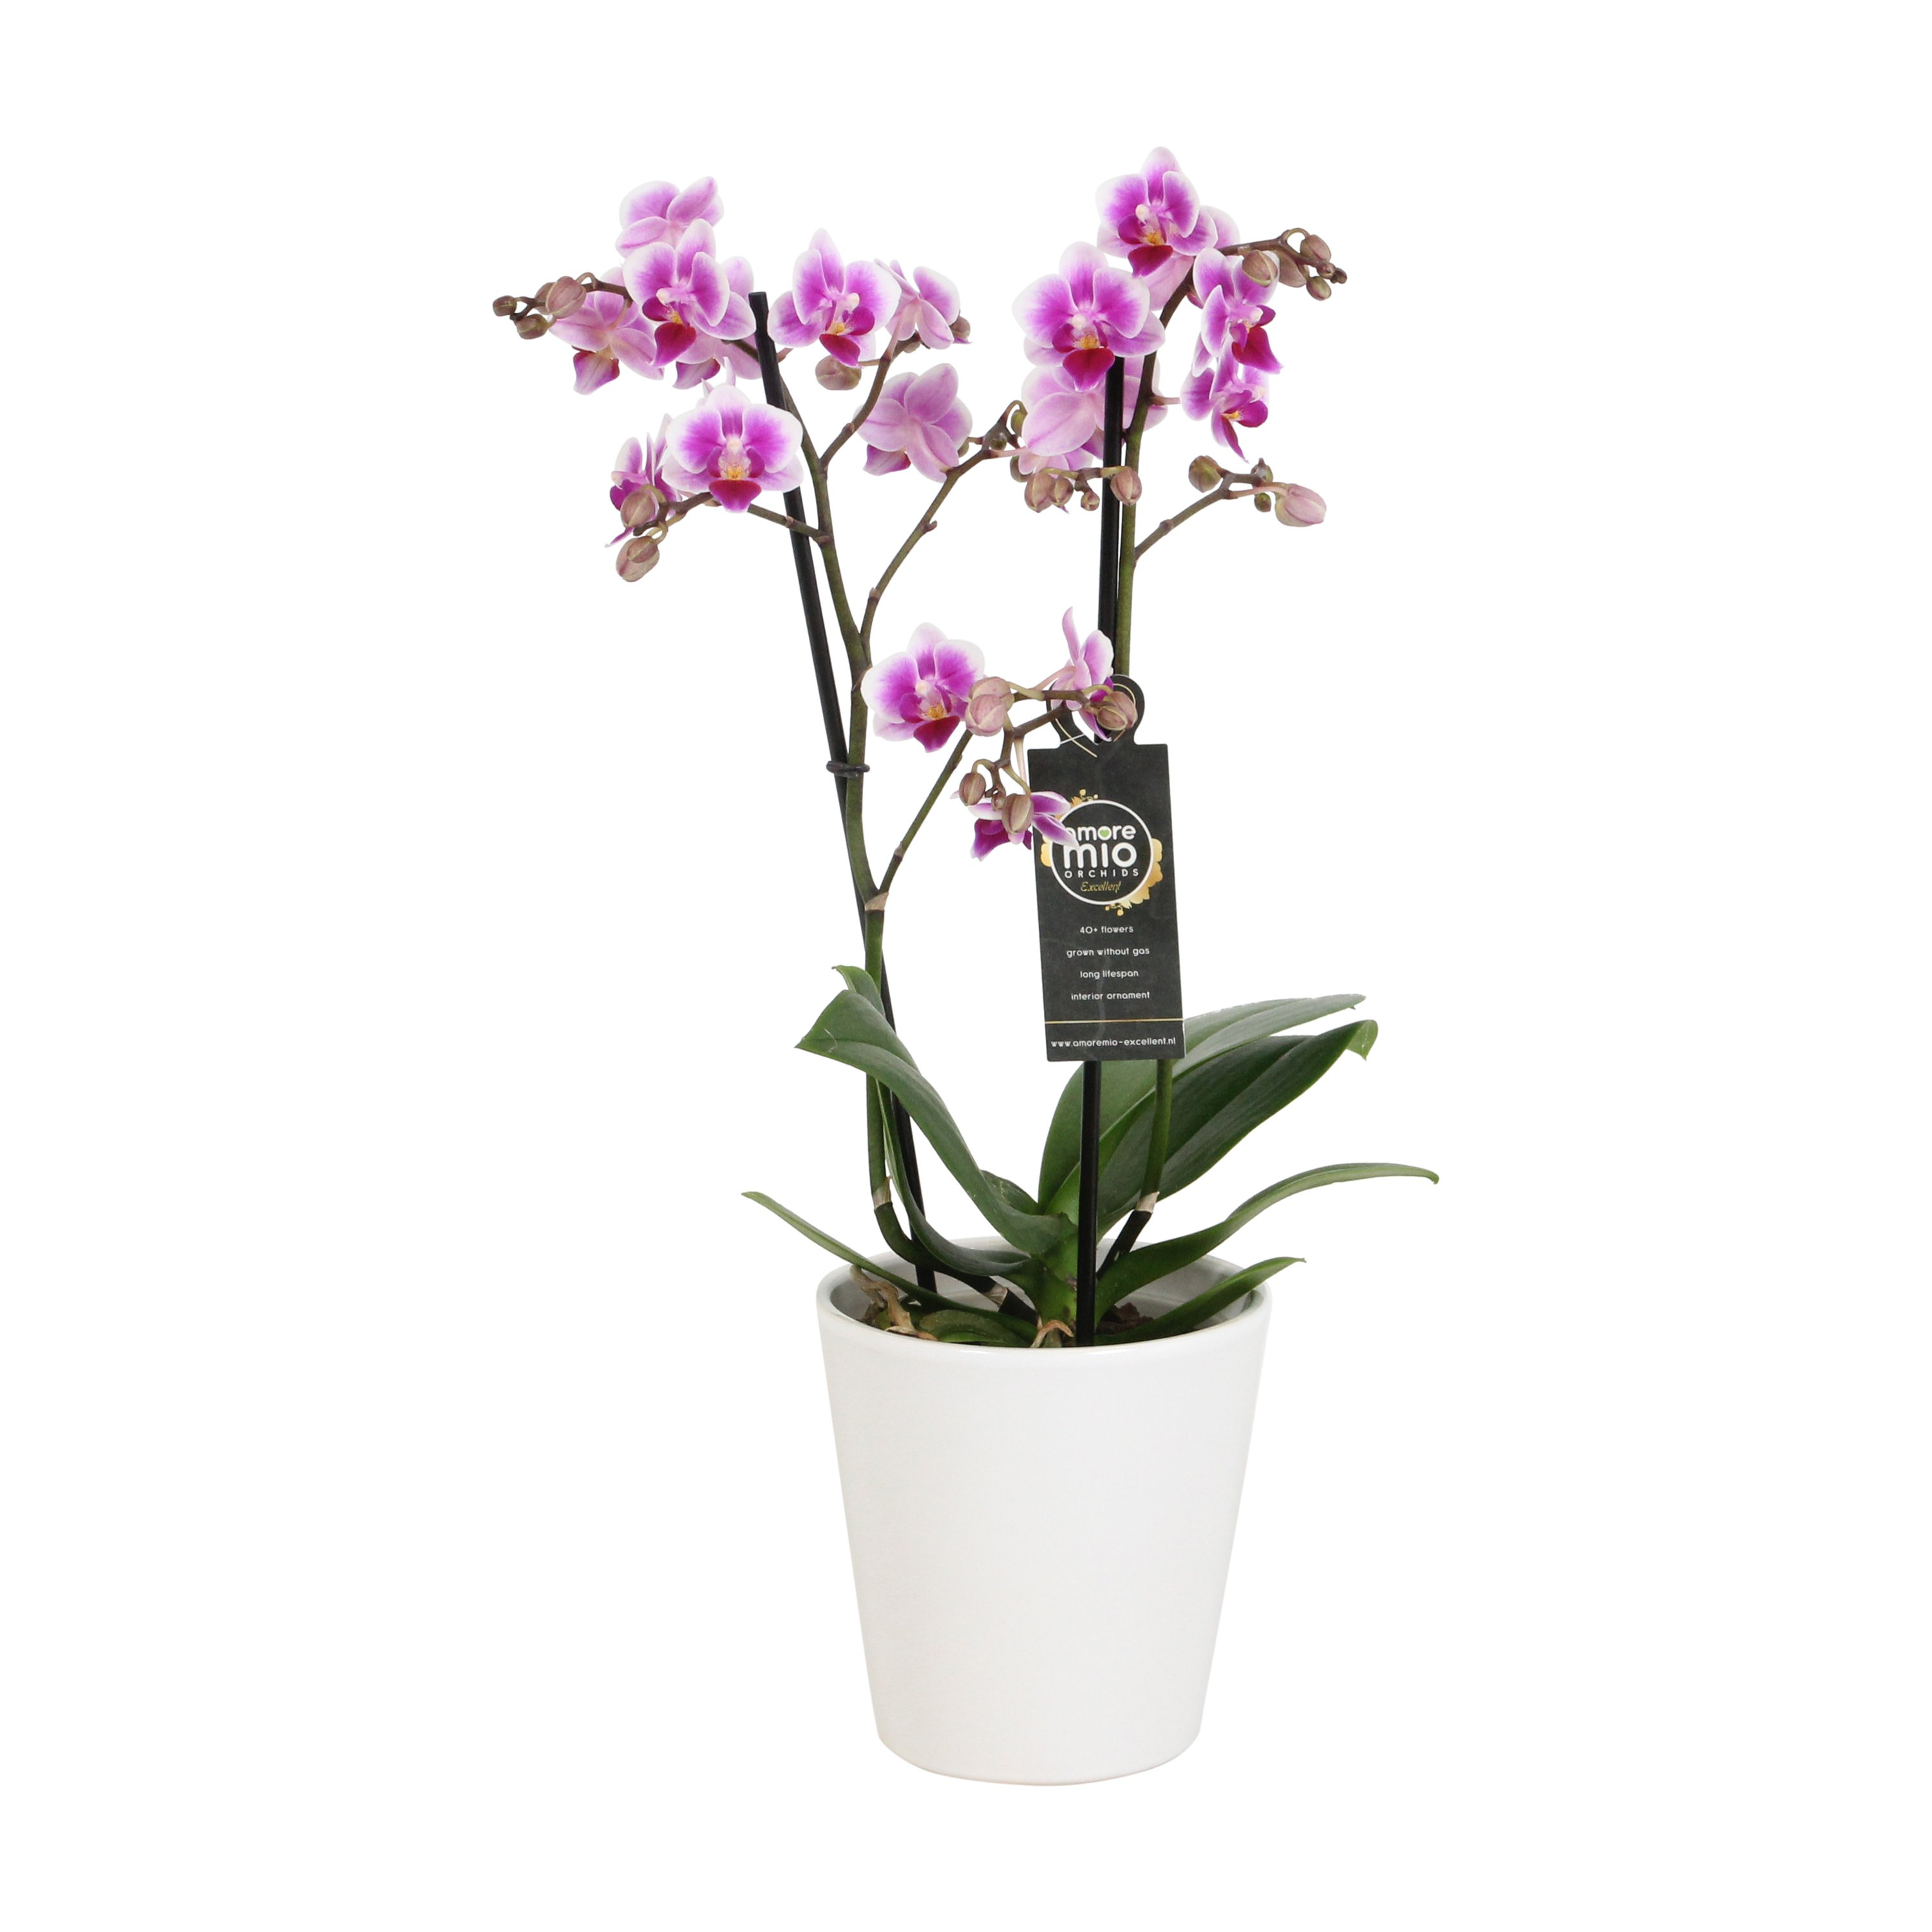 Orchid – Butterfly orchid in white ceramic pot as a set – Height: 45 cm, 2 stems, pink-white flowers